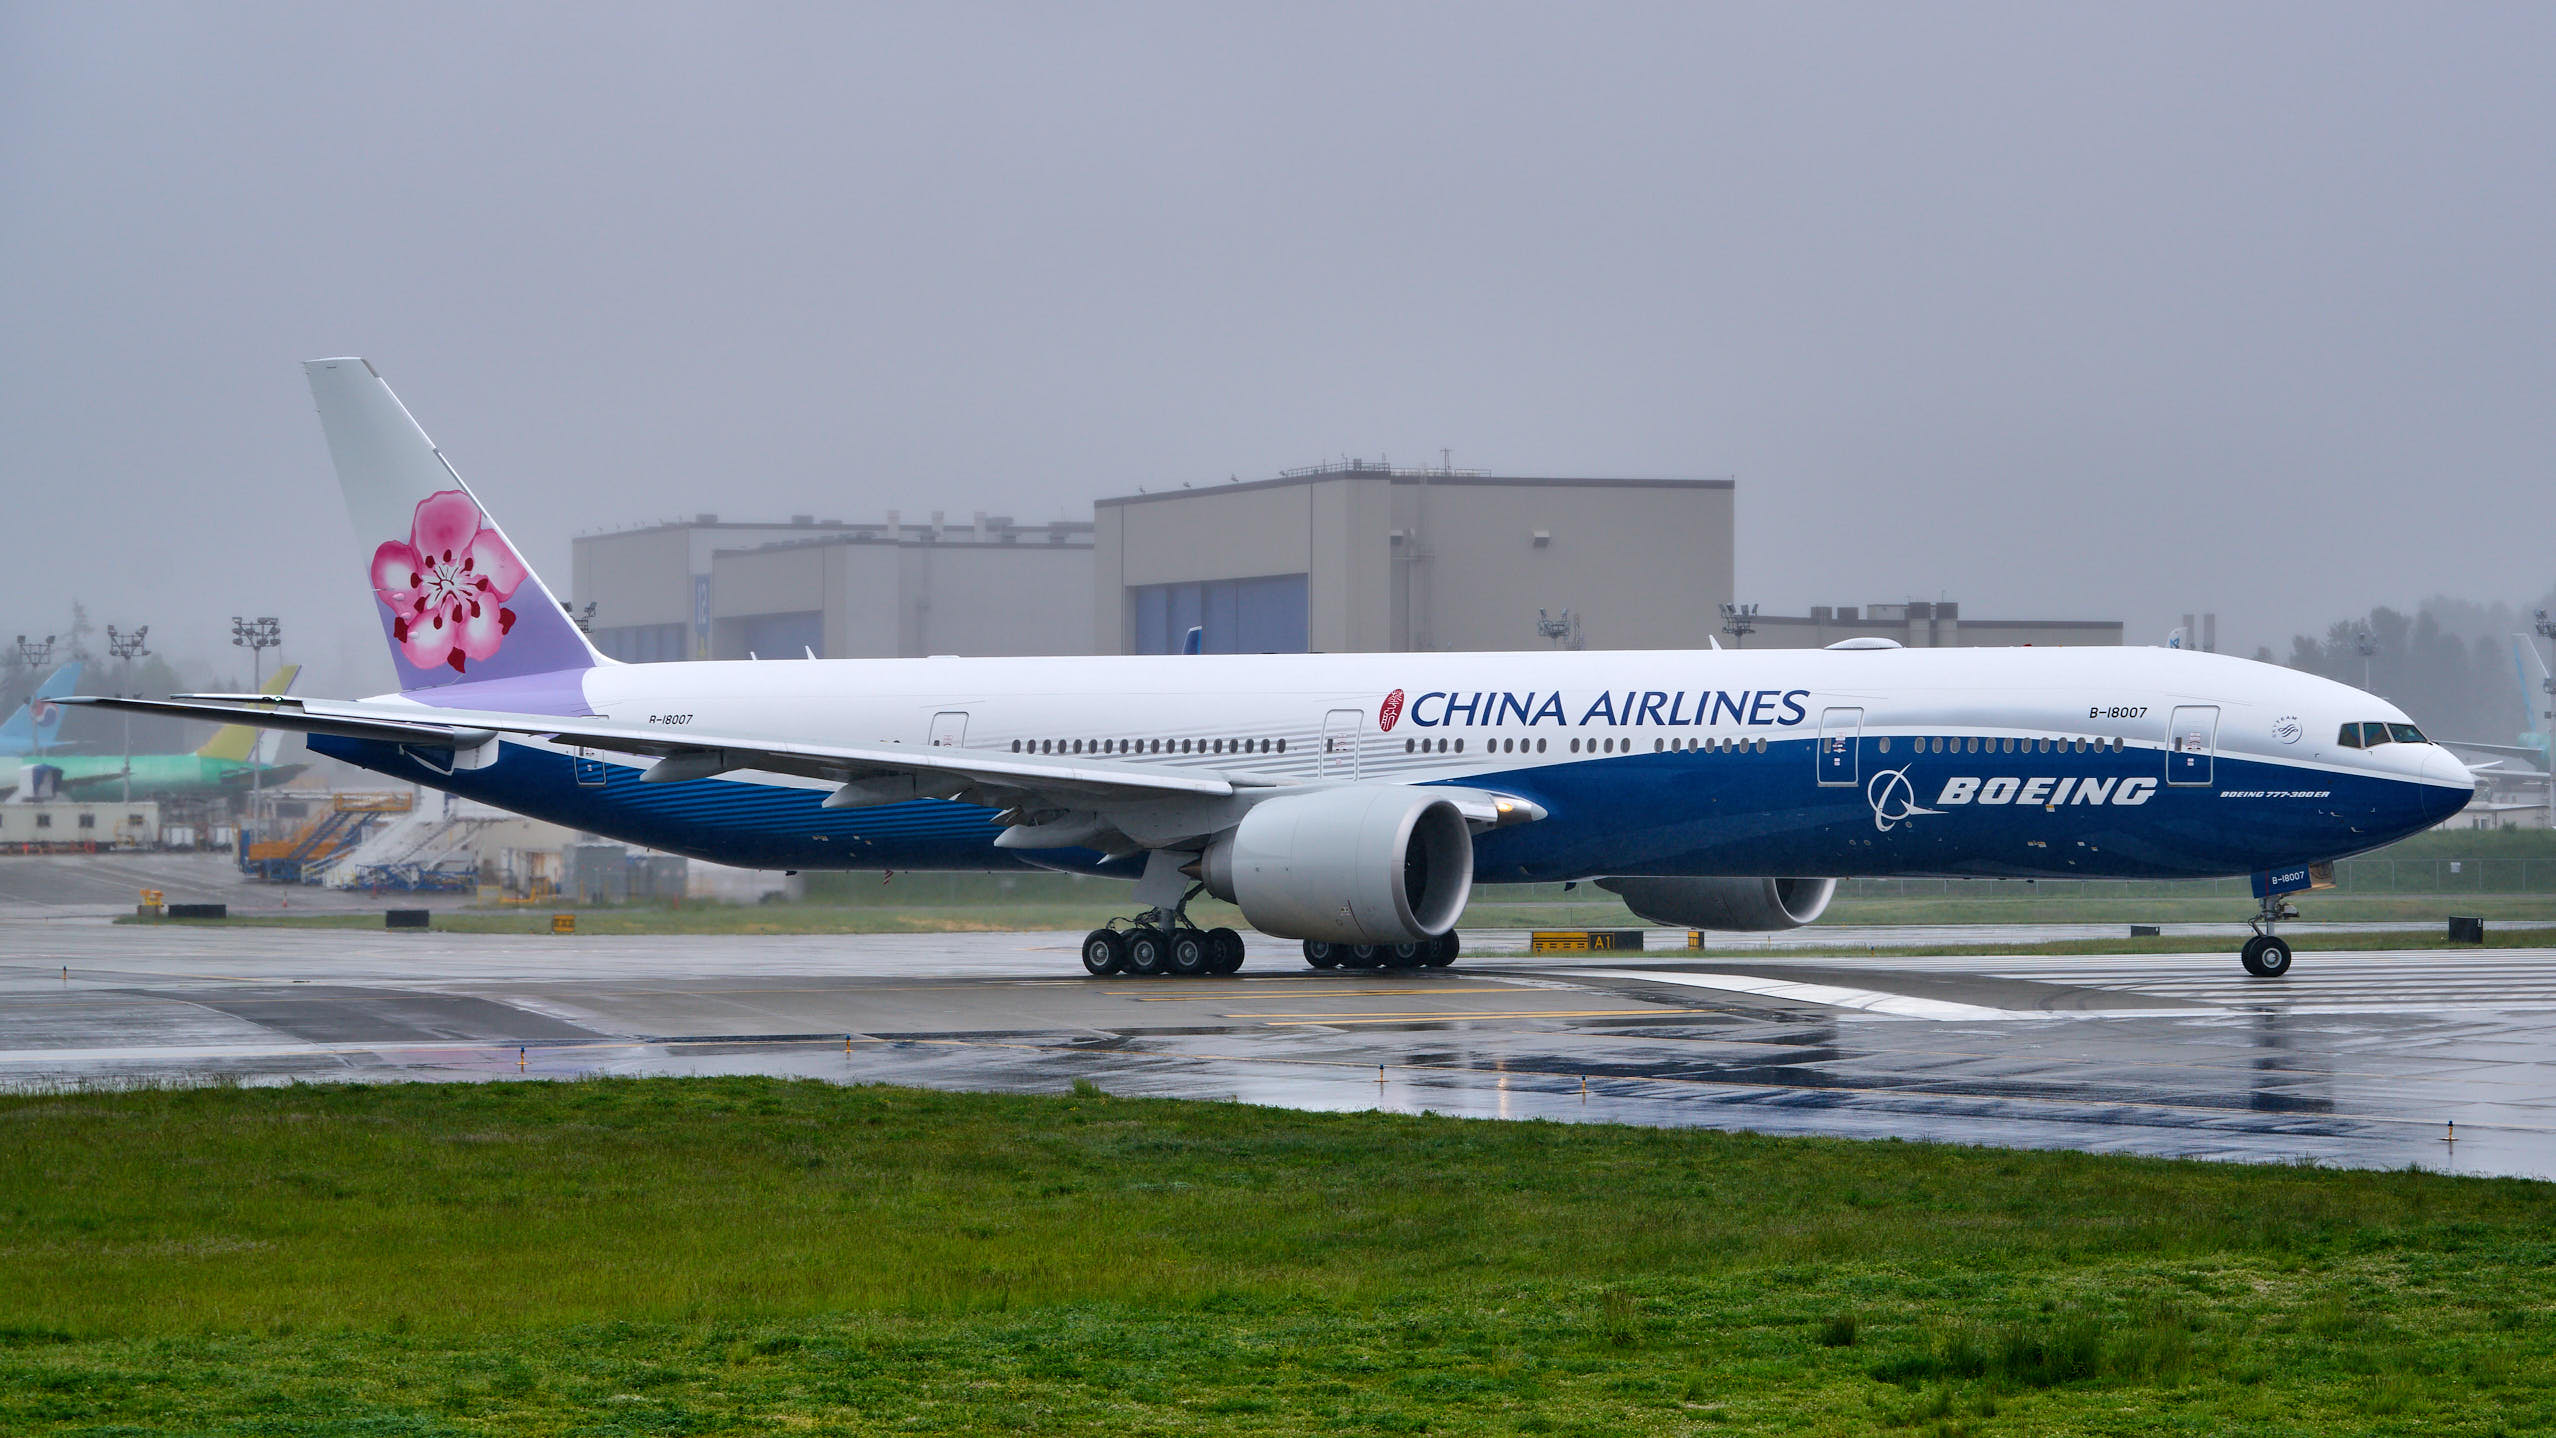 China Airlines: Boeing Livery